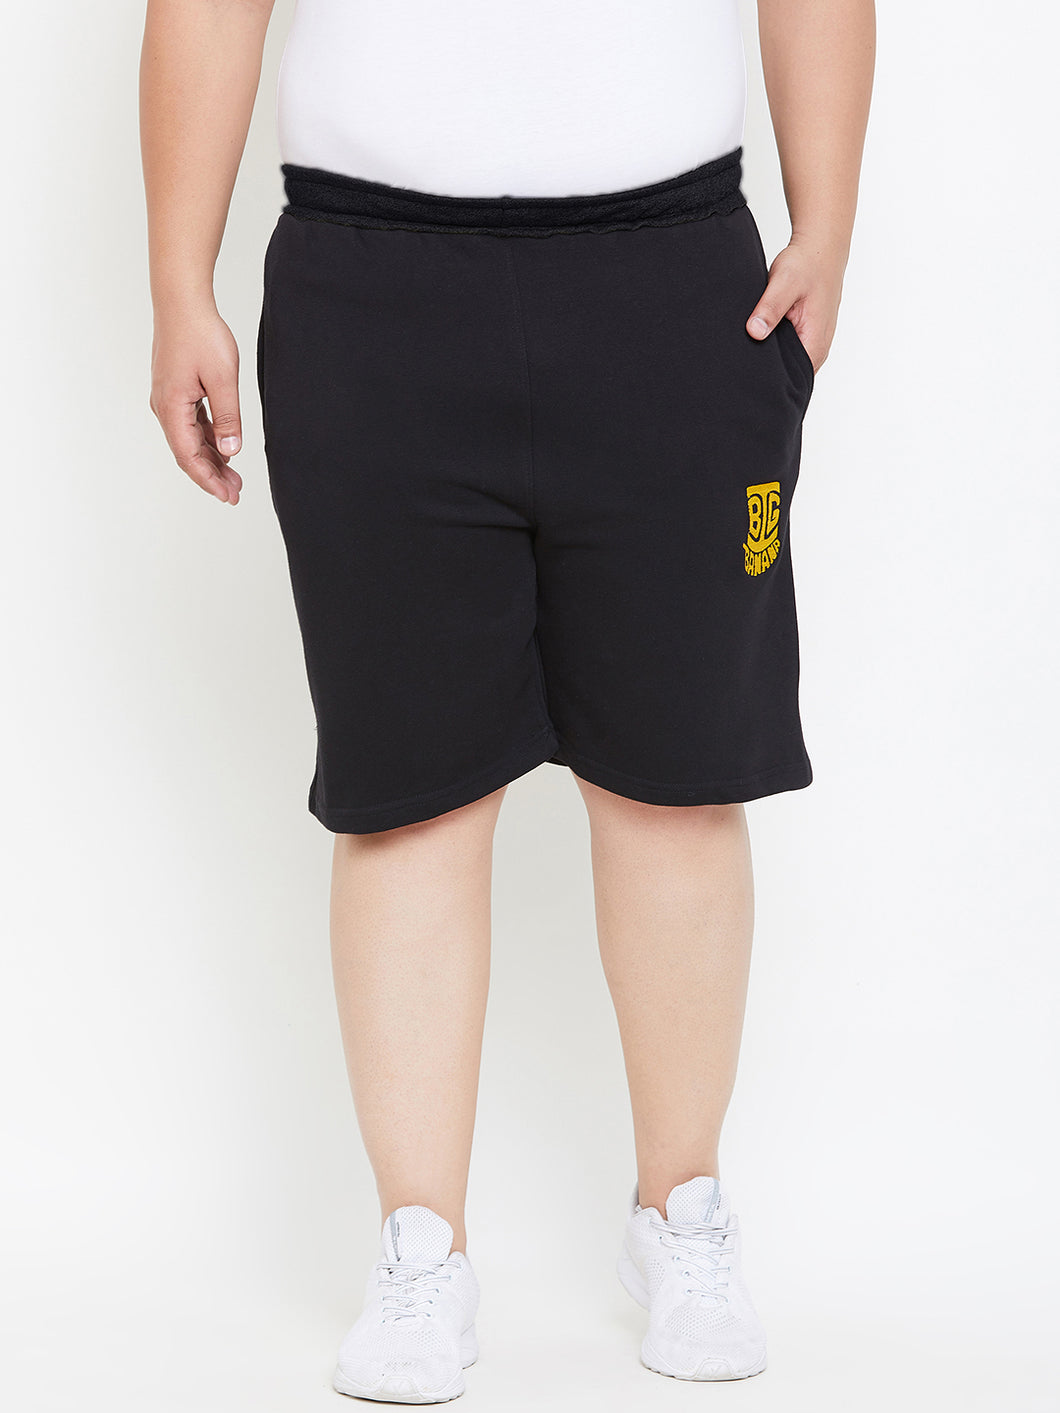 bigbanana Sal Black Solid Antimicrobial Shorts